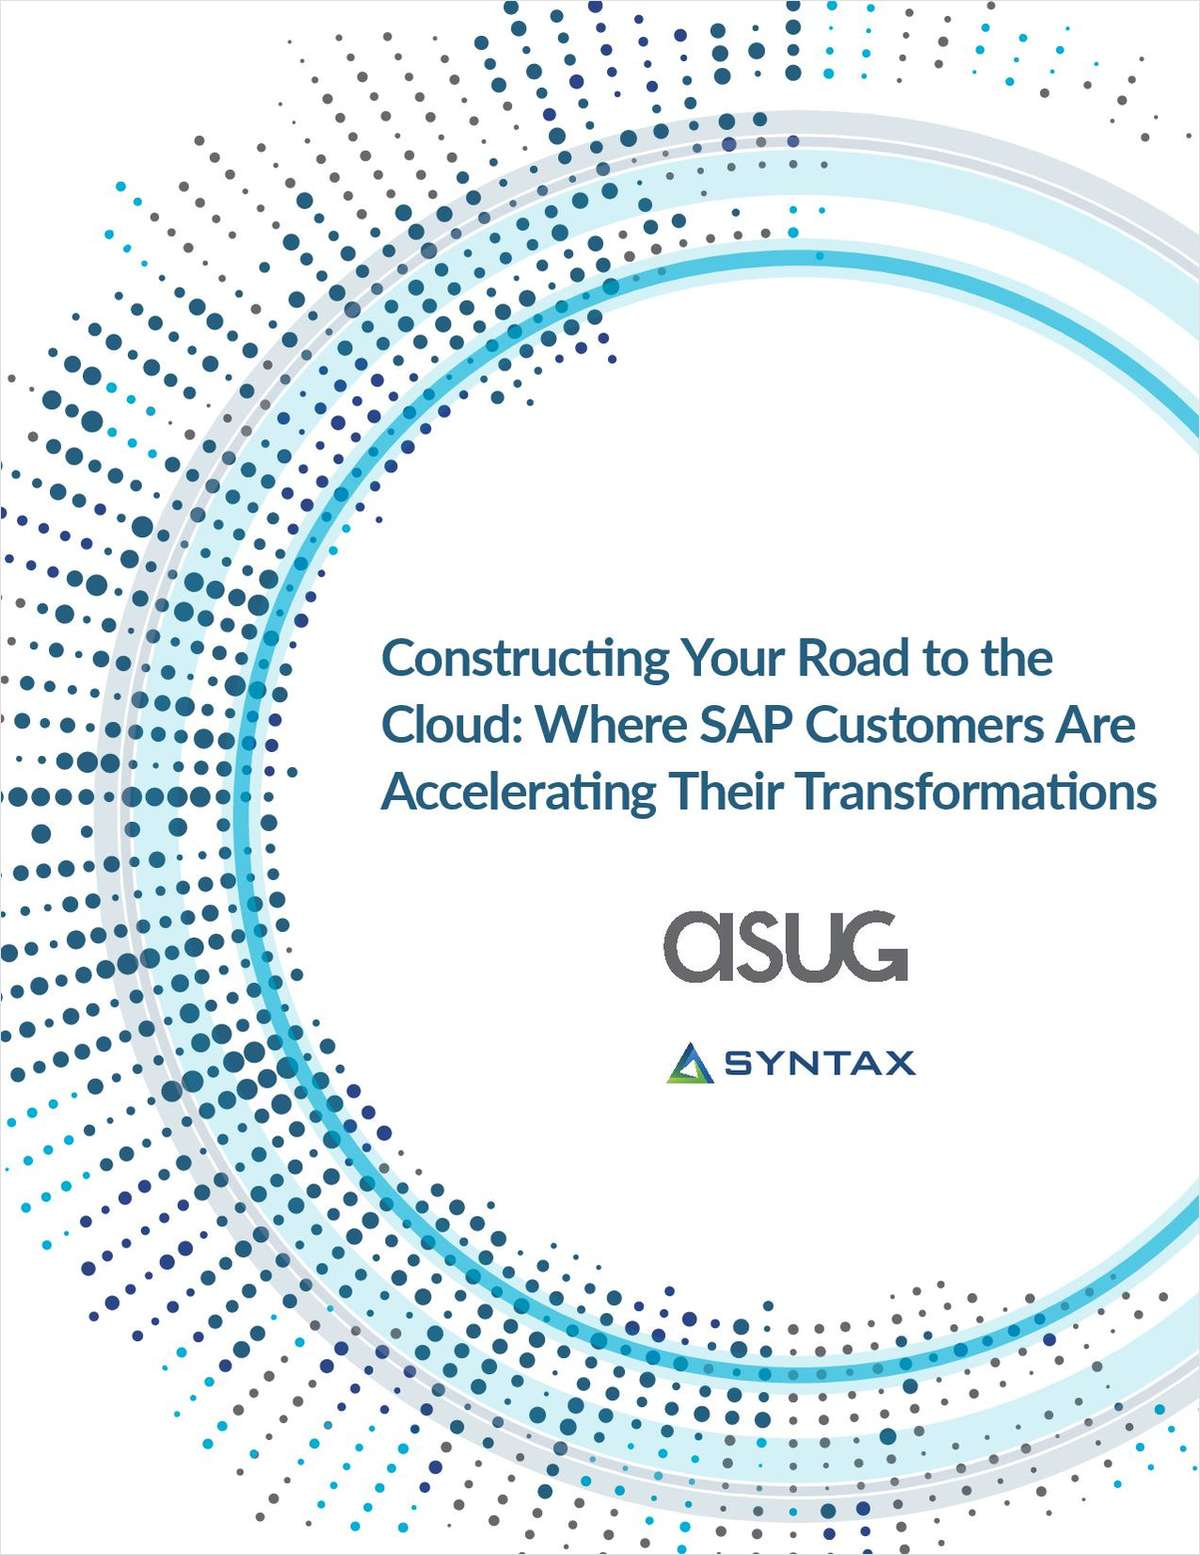 Constructing Your Road to the Cloud: Where SAP Customers Are Accelerating Their Transformations